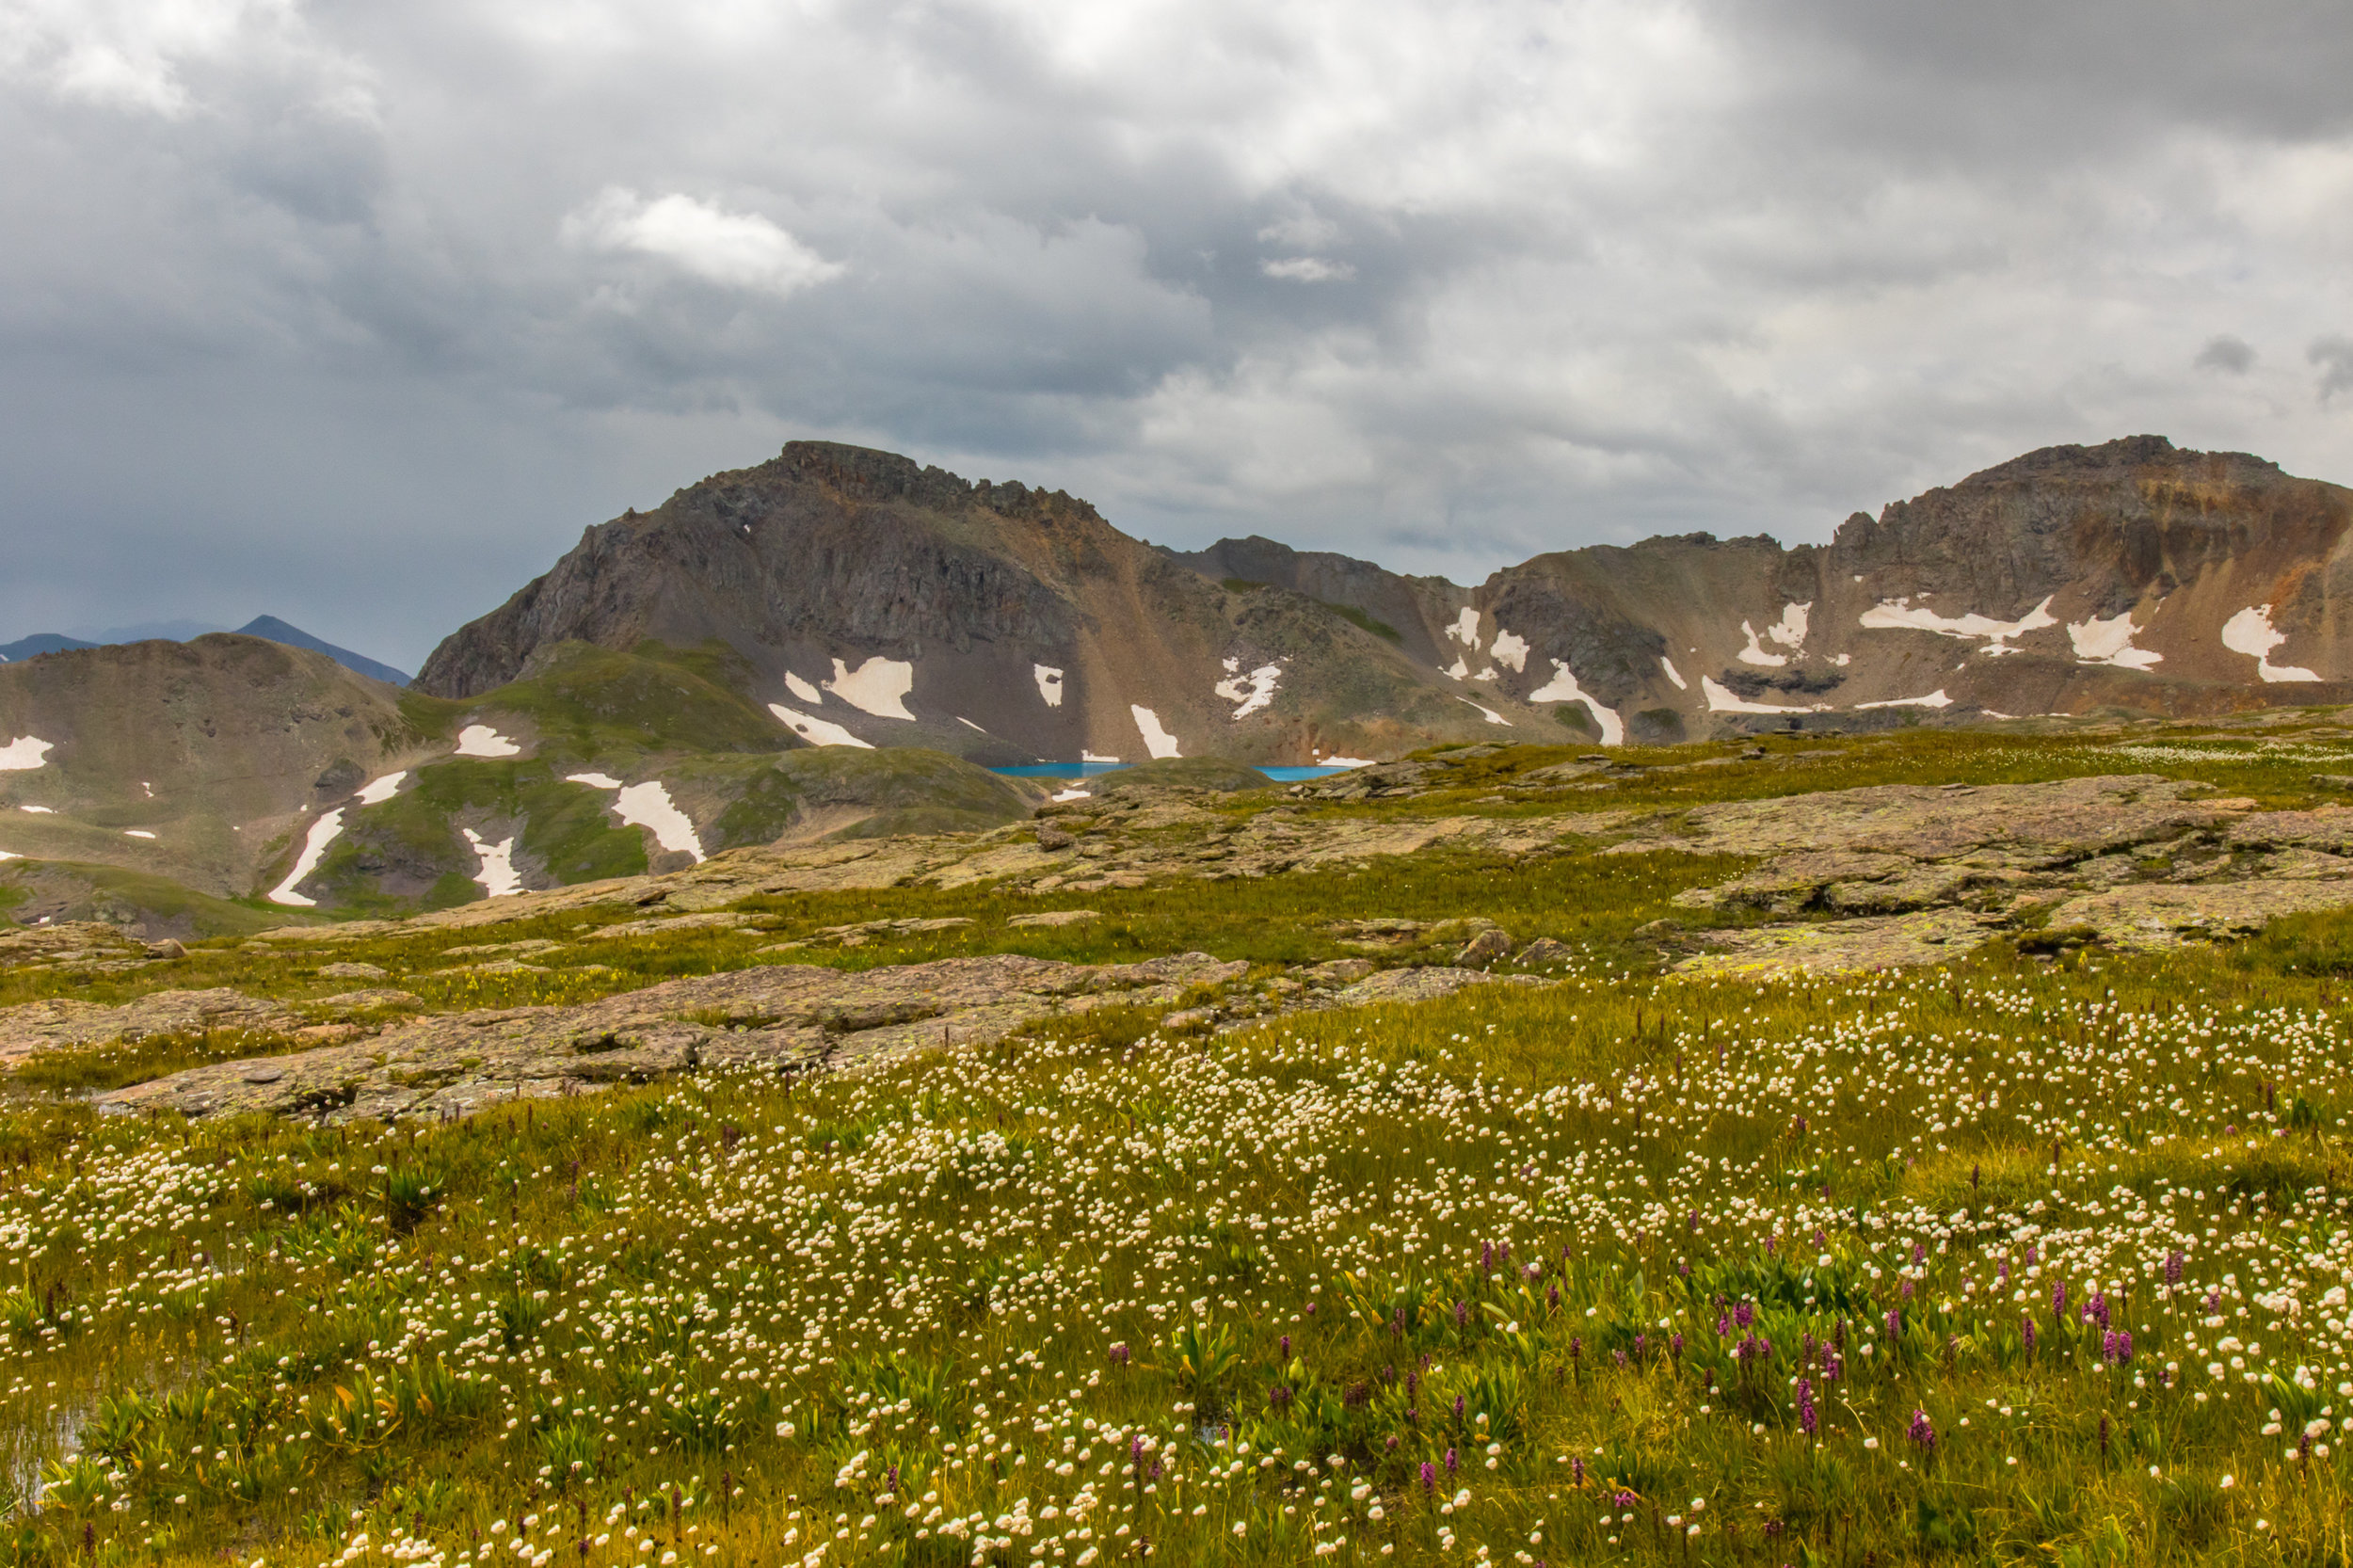 Wildflowers along the route